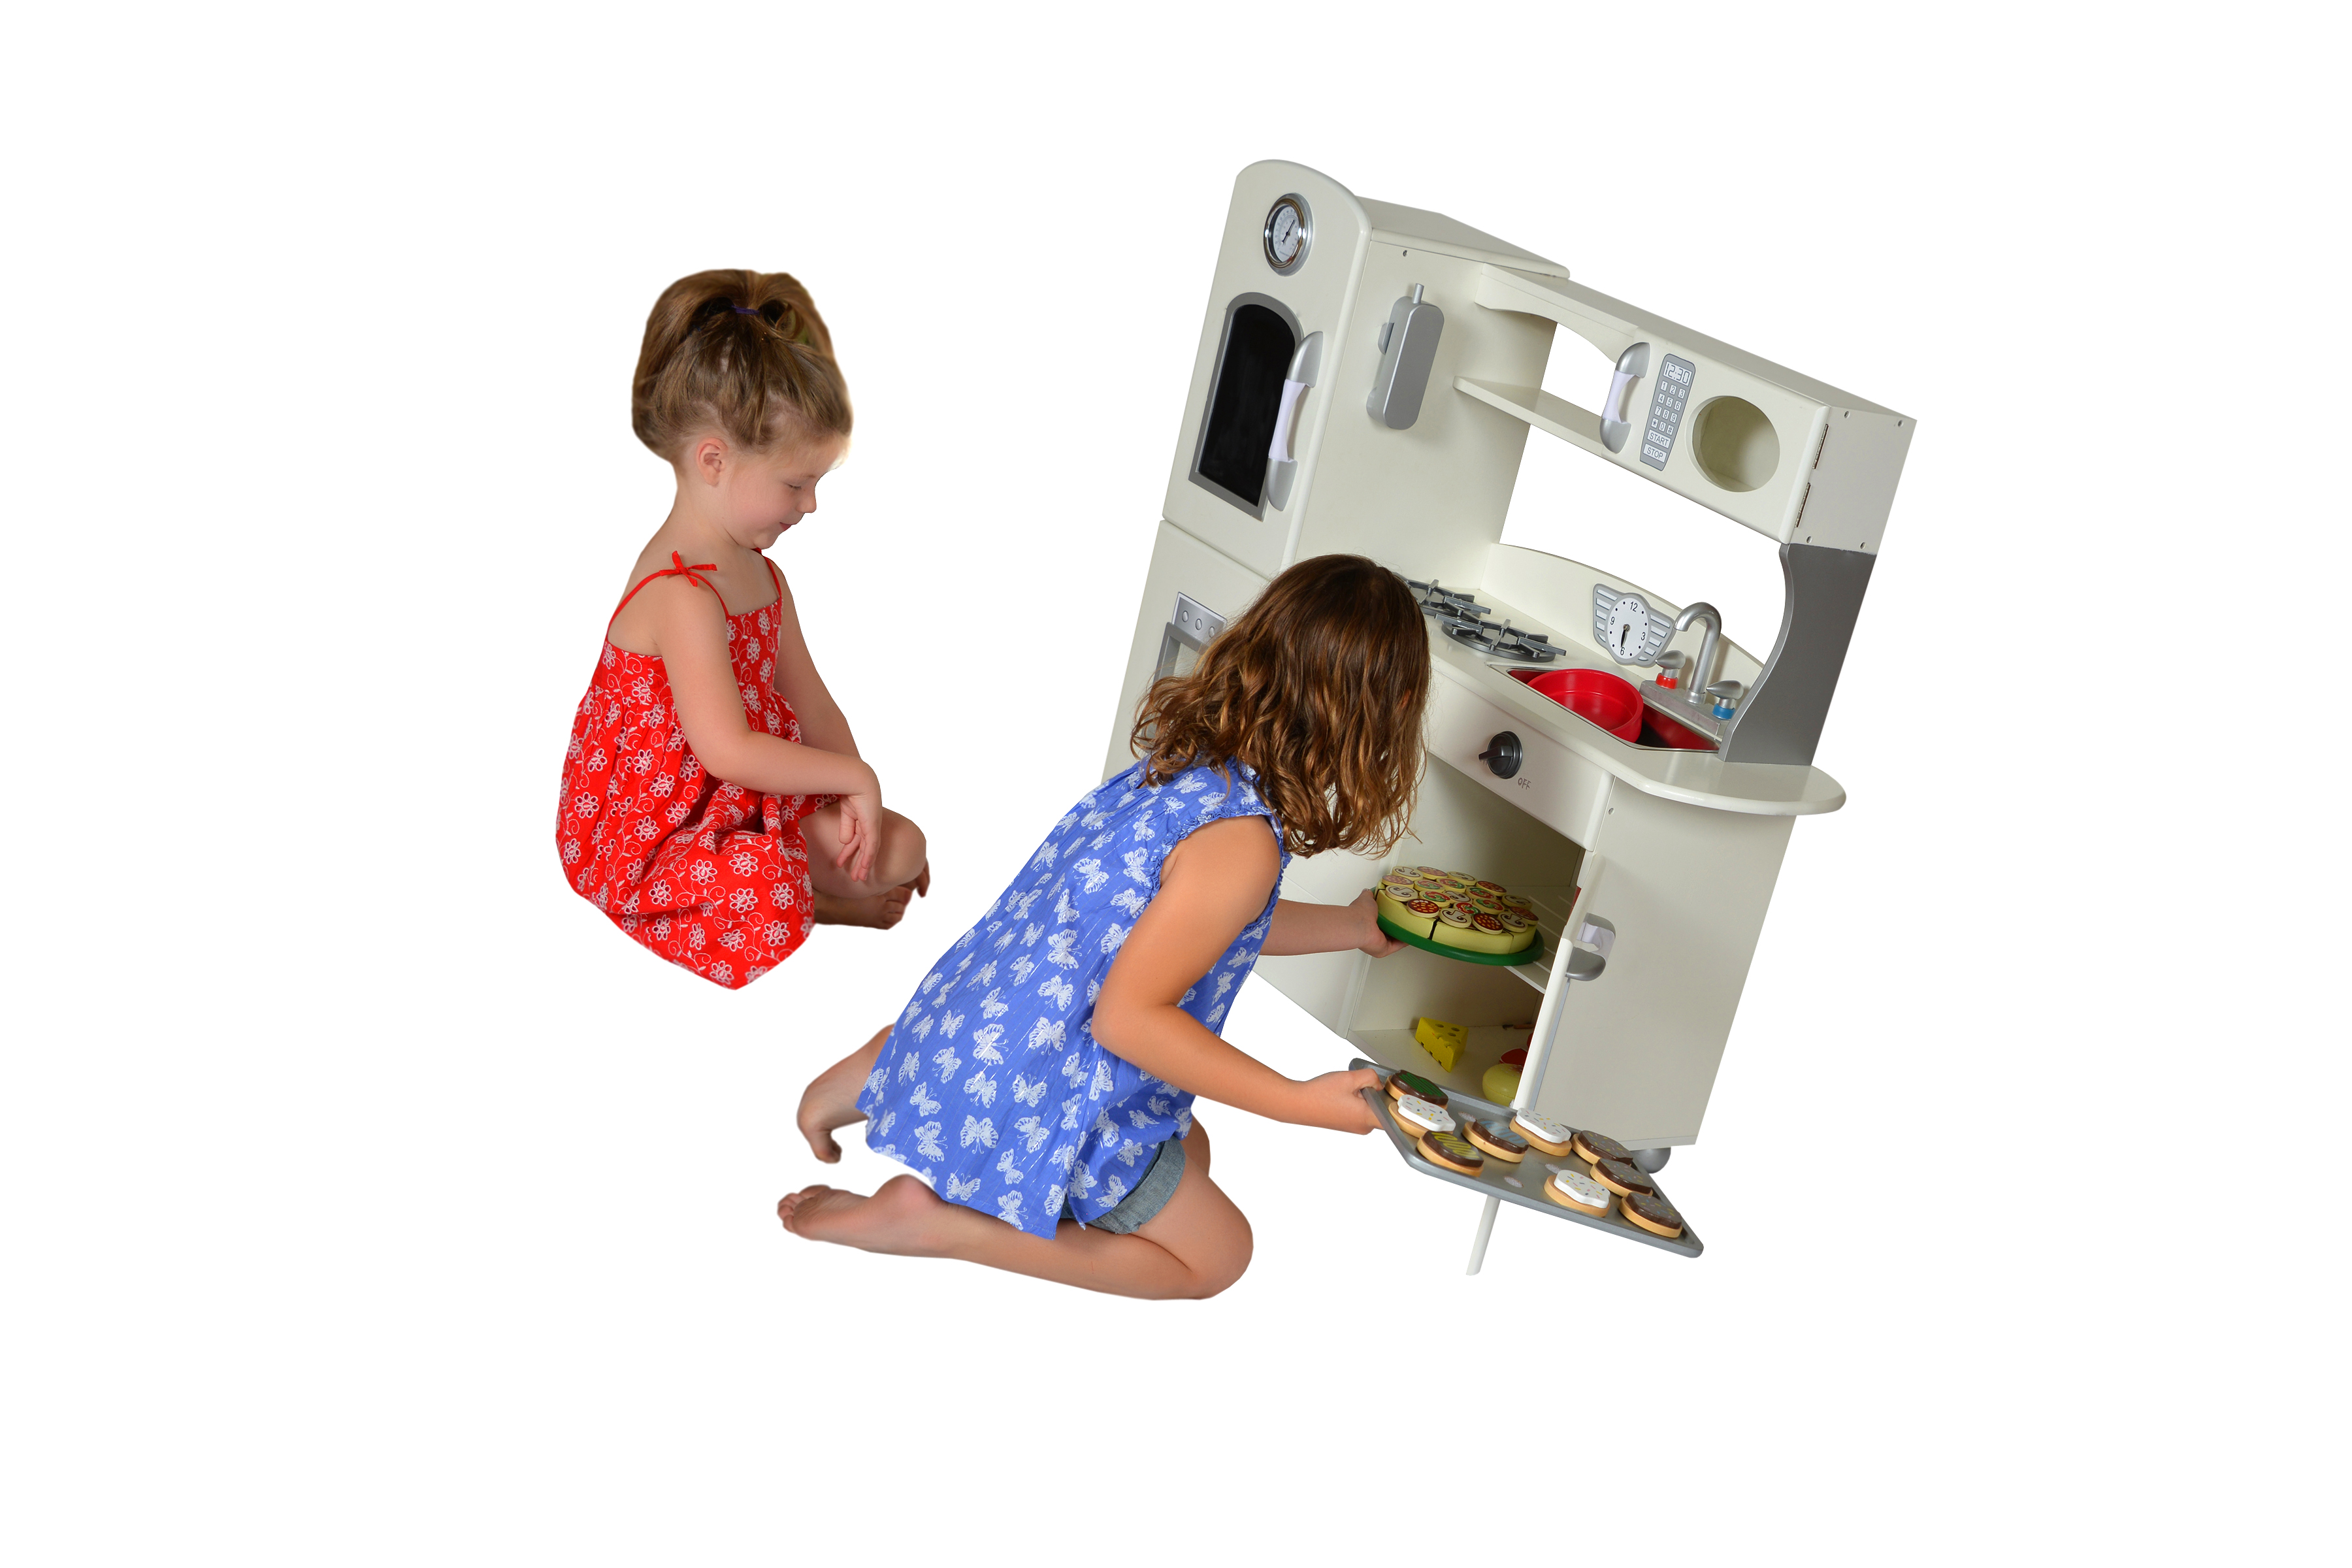 White Country Living 1 piece kitchen by Teamson